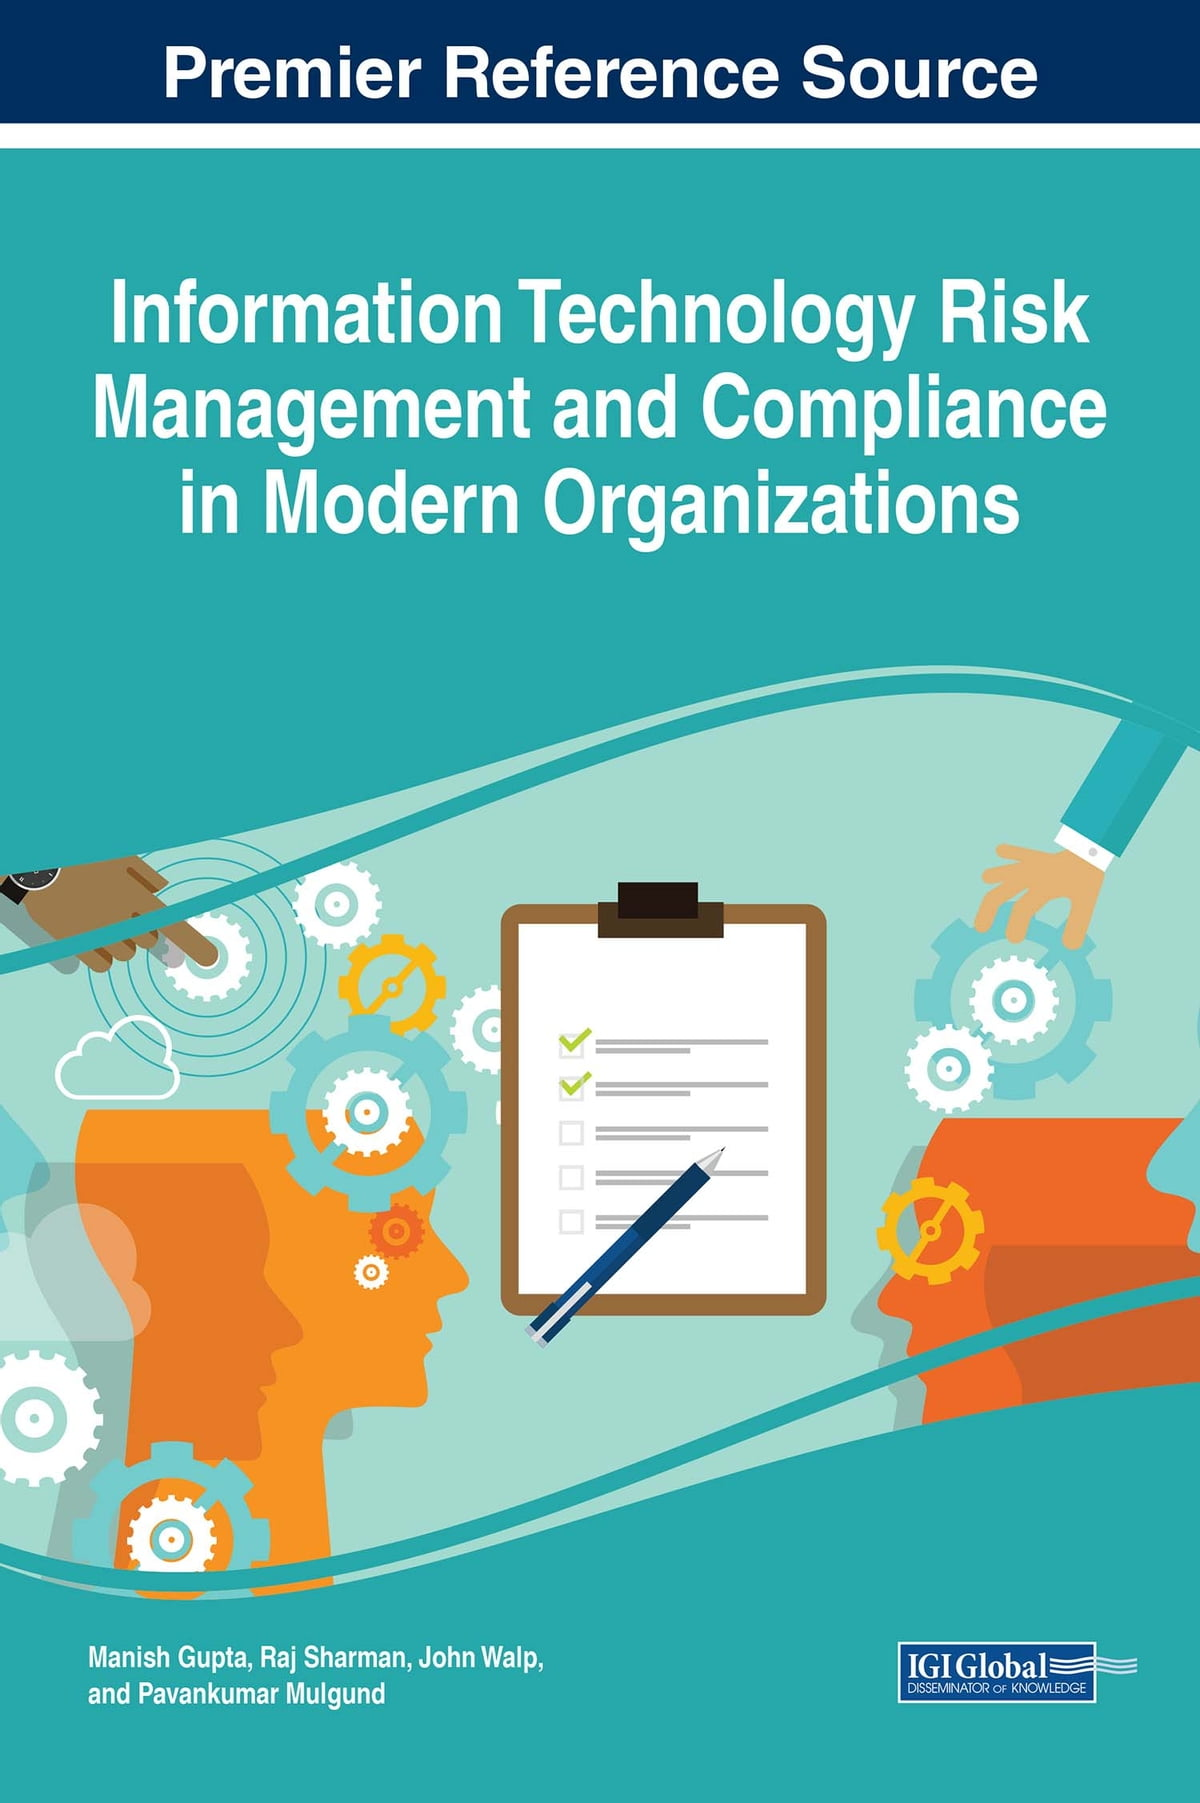 Technology Management Image: Information Technology Risk Management And Compliance In